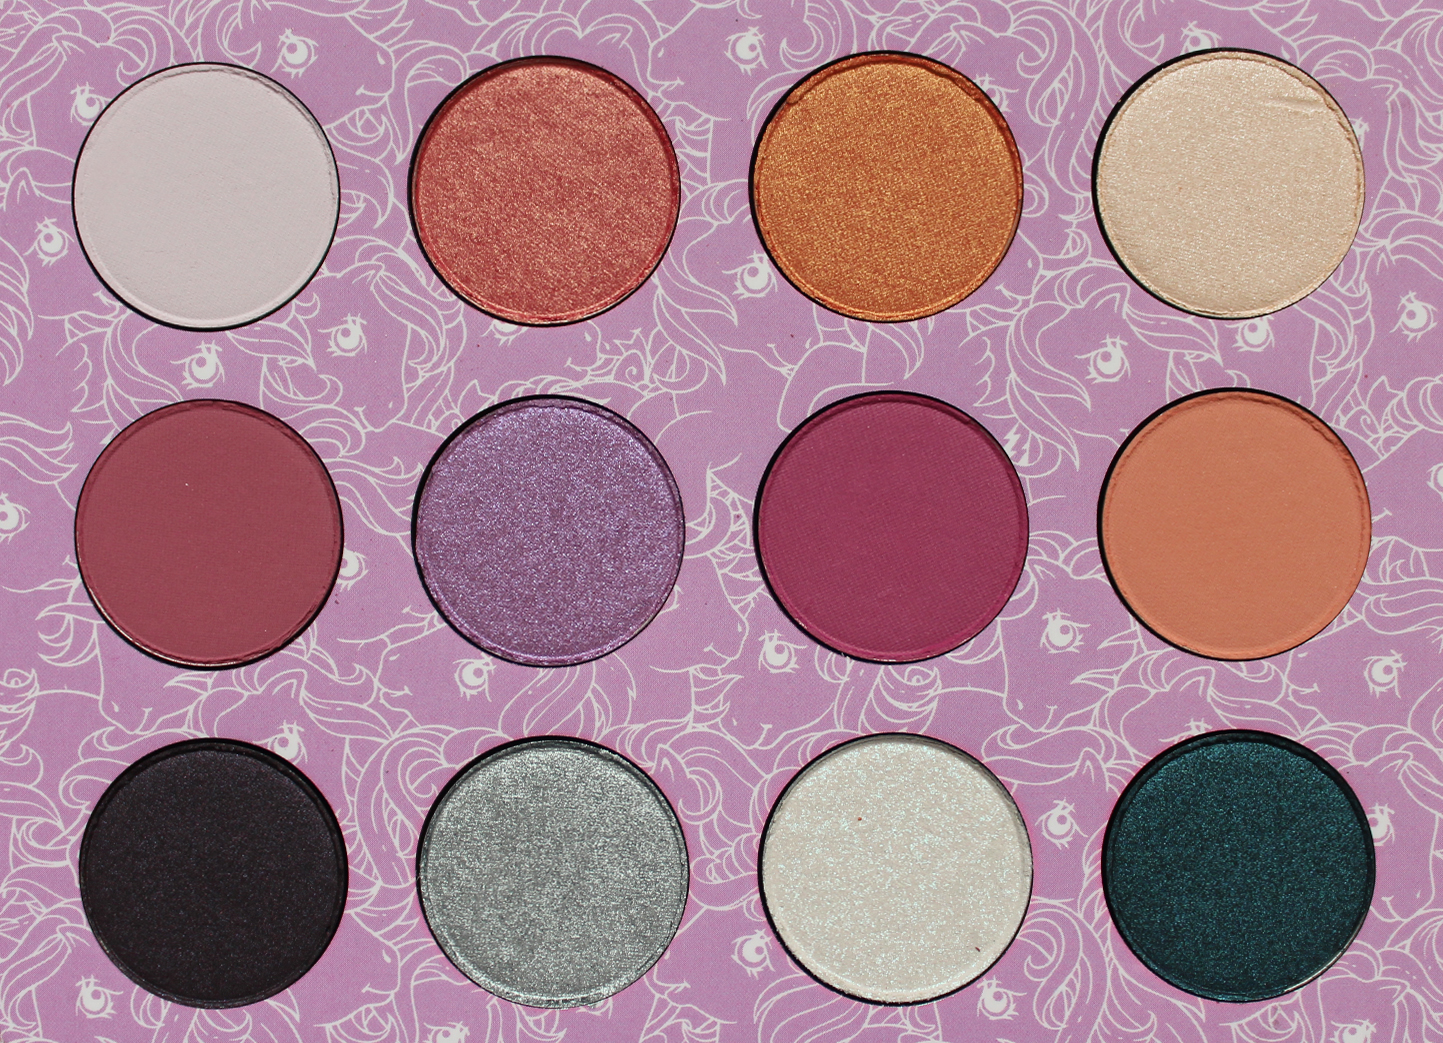 COLOURPOP | My Little Pony Collection - Review + Swatches - CassandraMyee